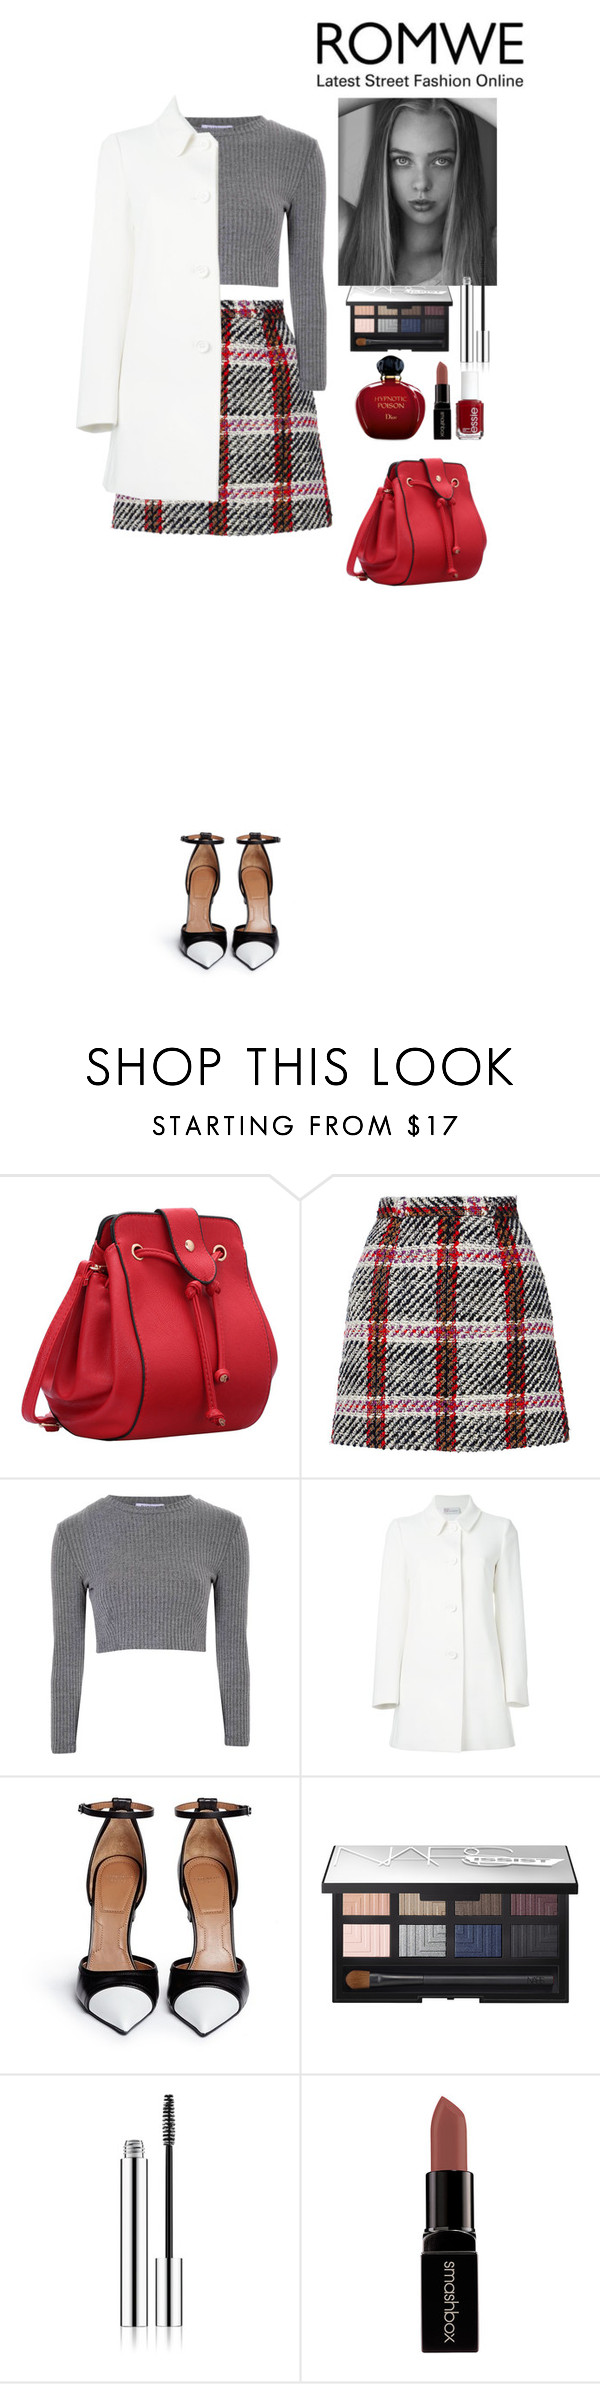 """""""Romwe contest"""" by eliza-redkina ❤ liked on Polyvore featuring Carven, Glamorous, RED Valentino, Givenchy, NARS Cosmetics, Essie, Smashbox, Christian Dior, StreetStyle and outfit"""